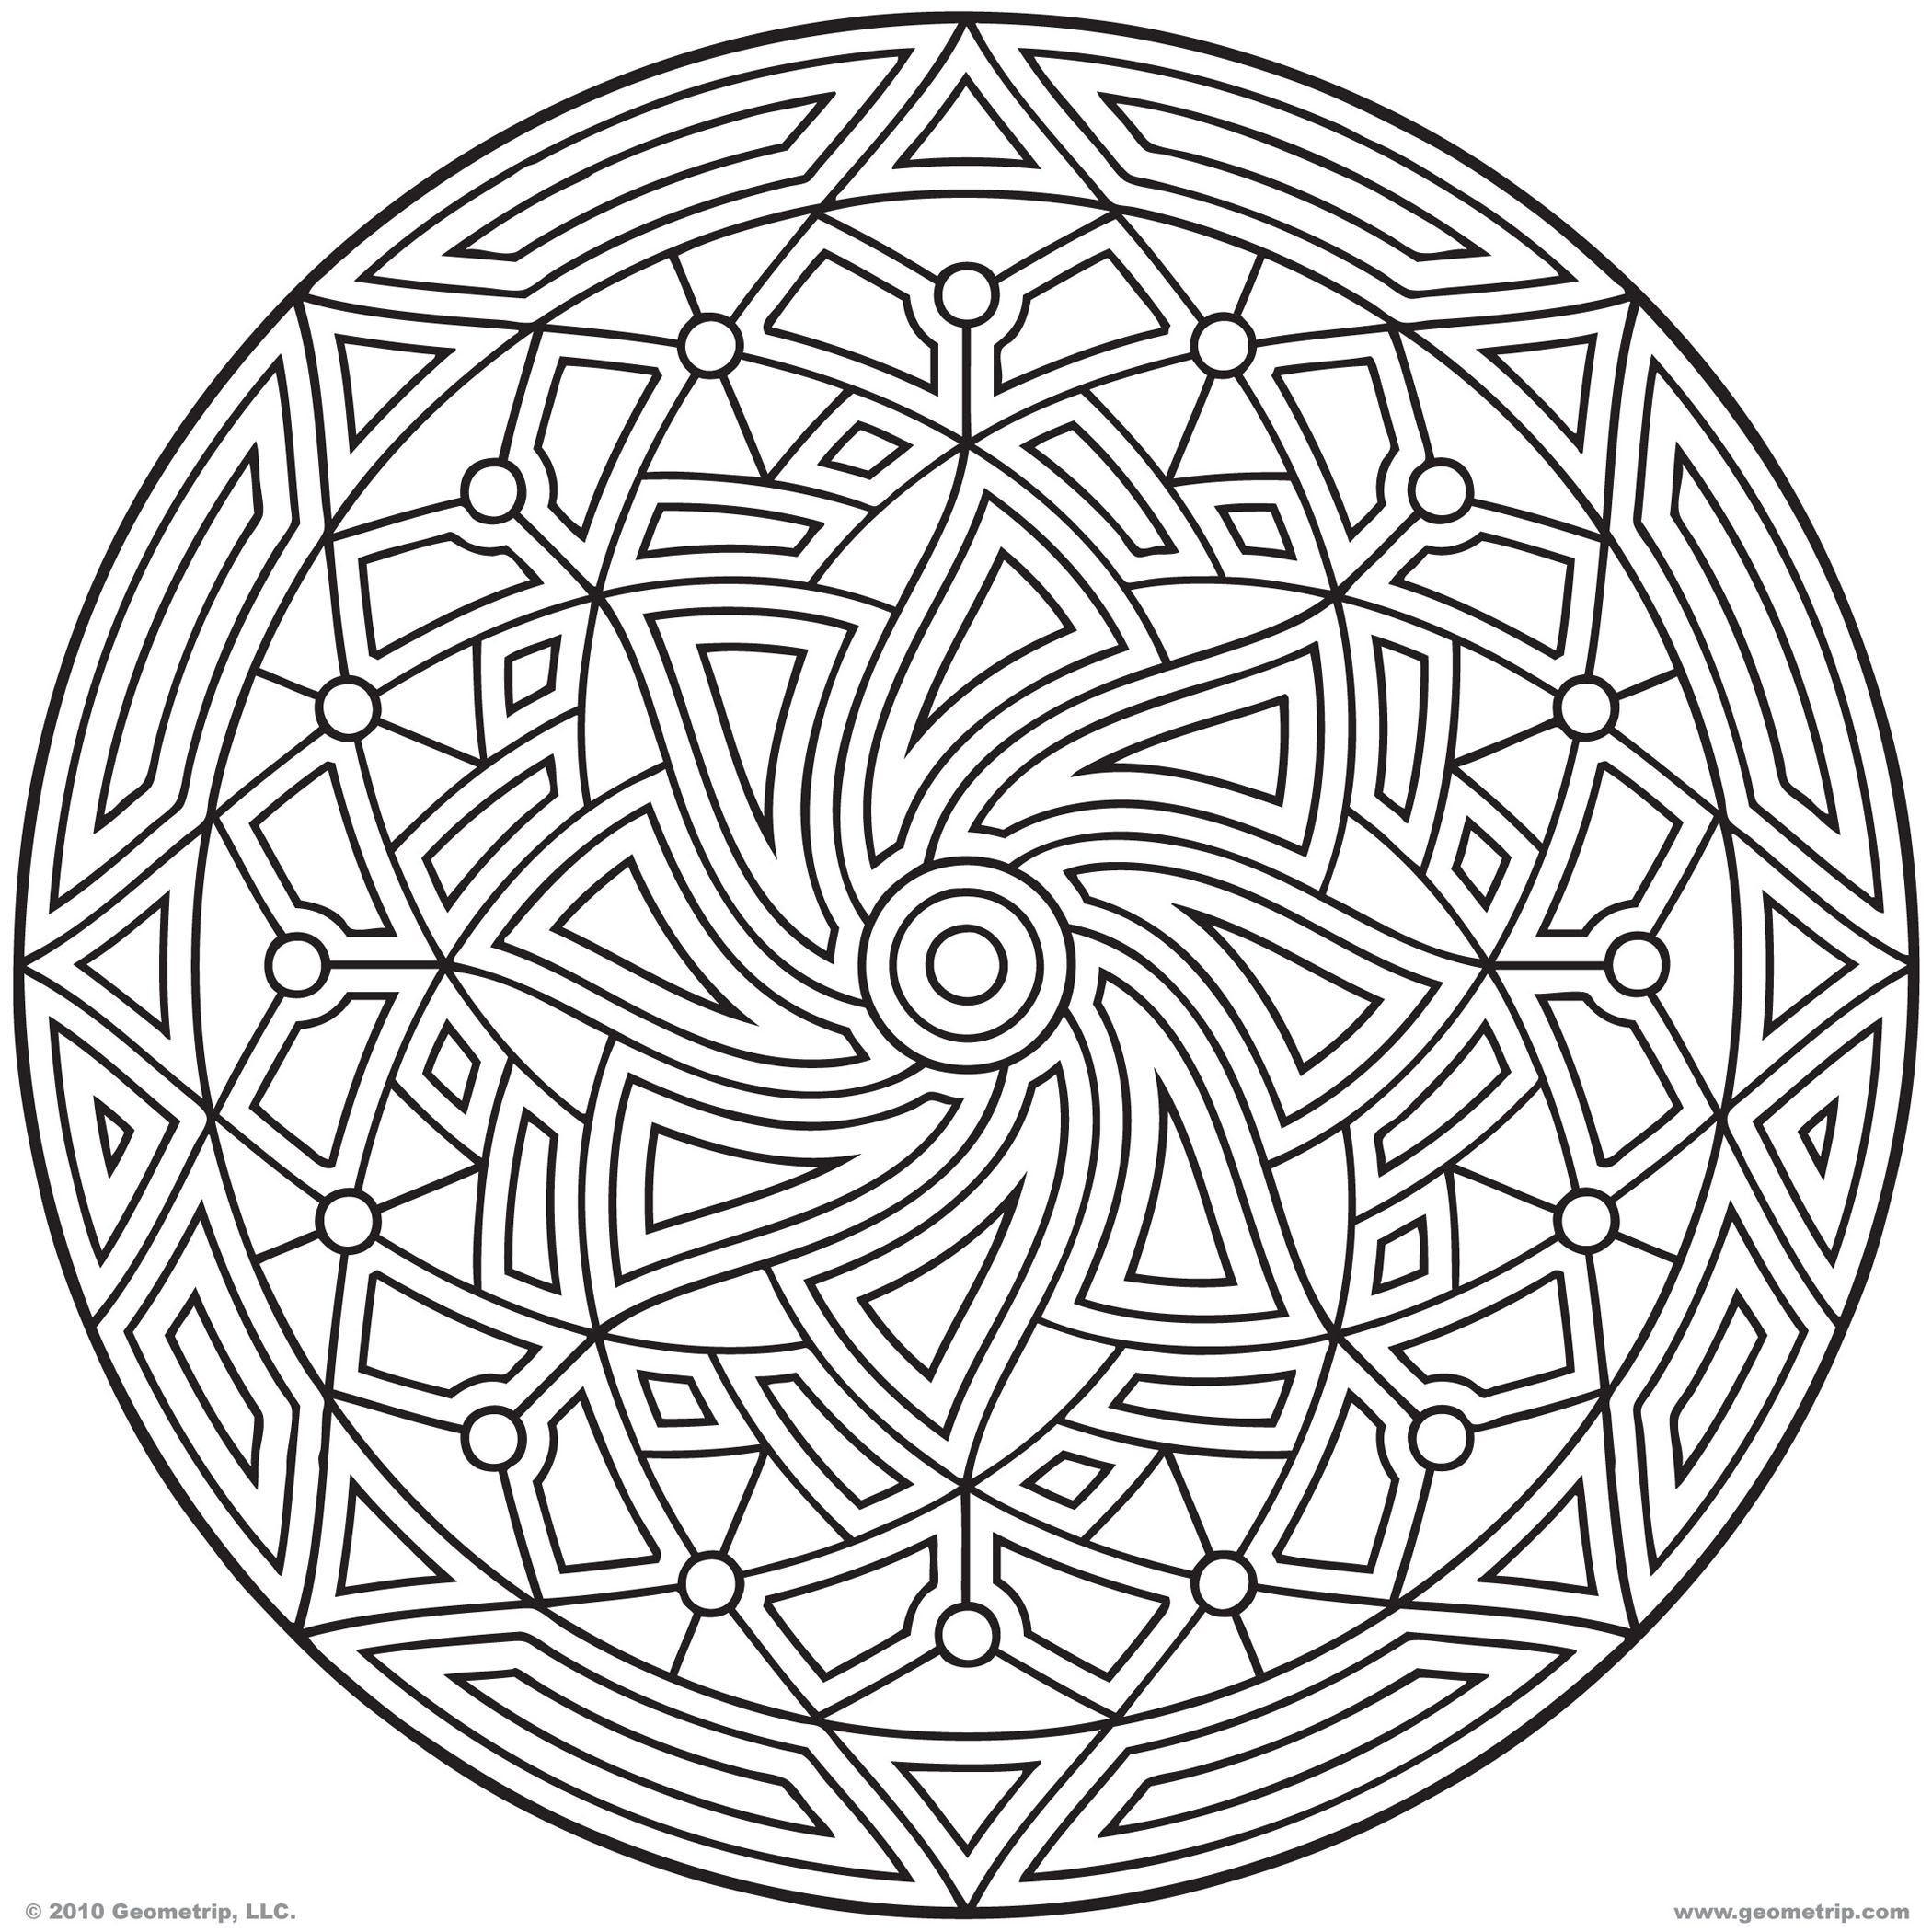 Heart Coloring Pages Ready For Download Or Print. Description From